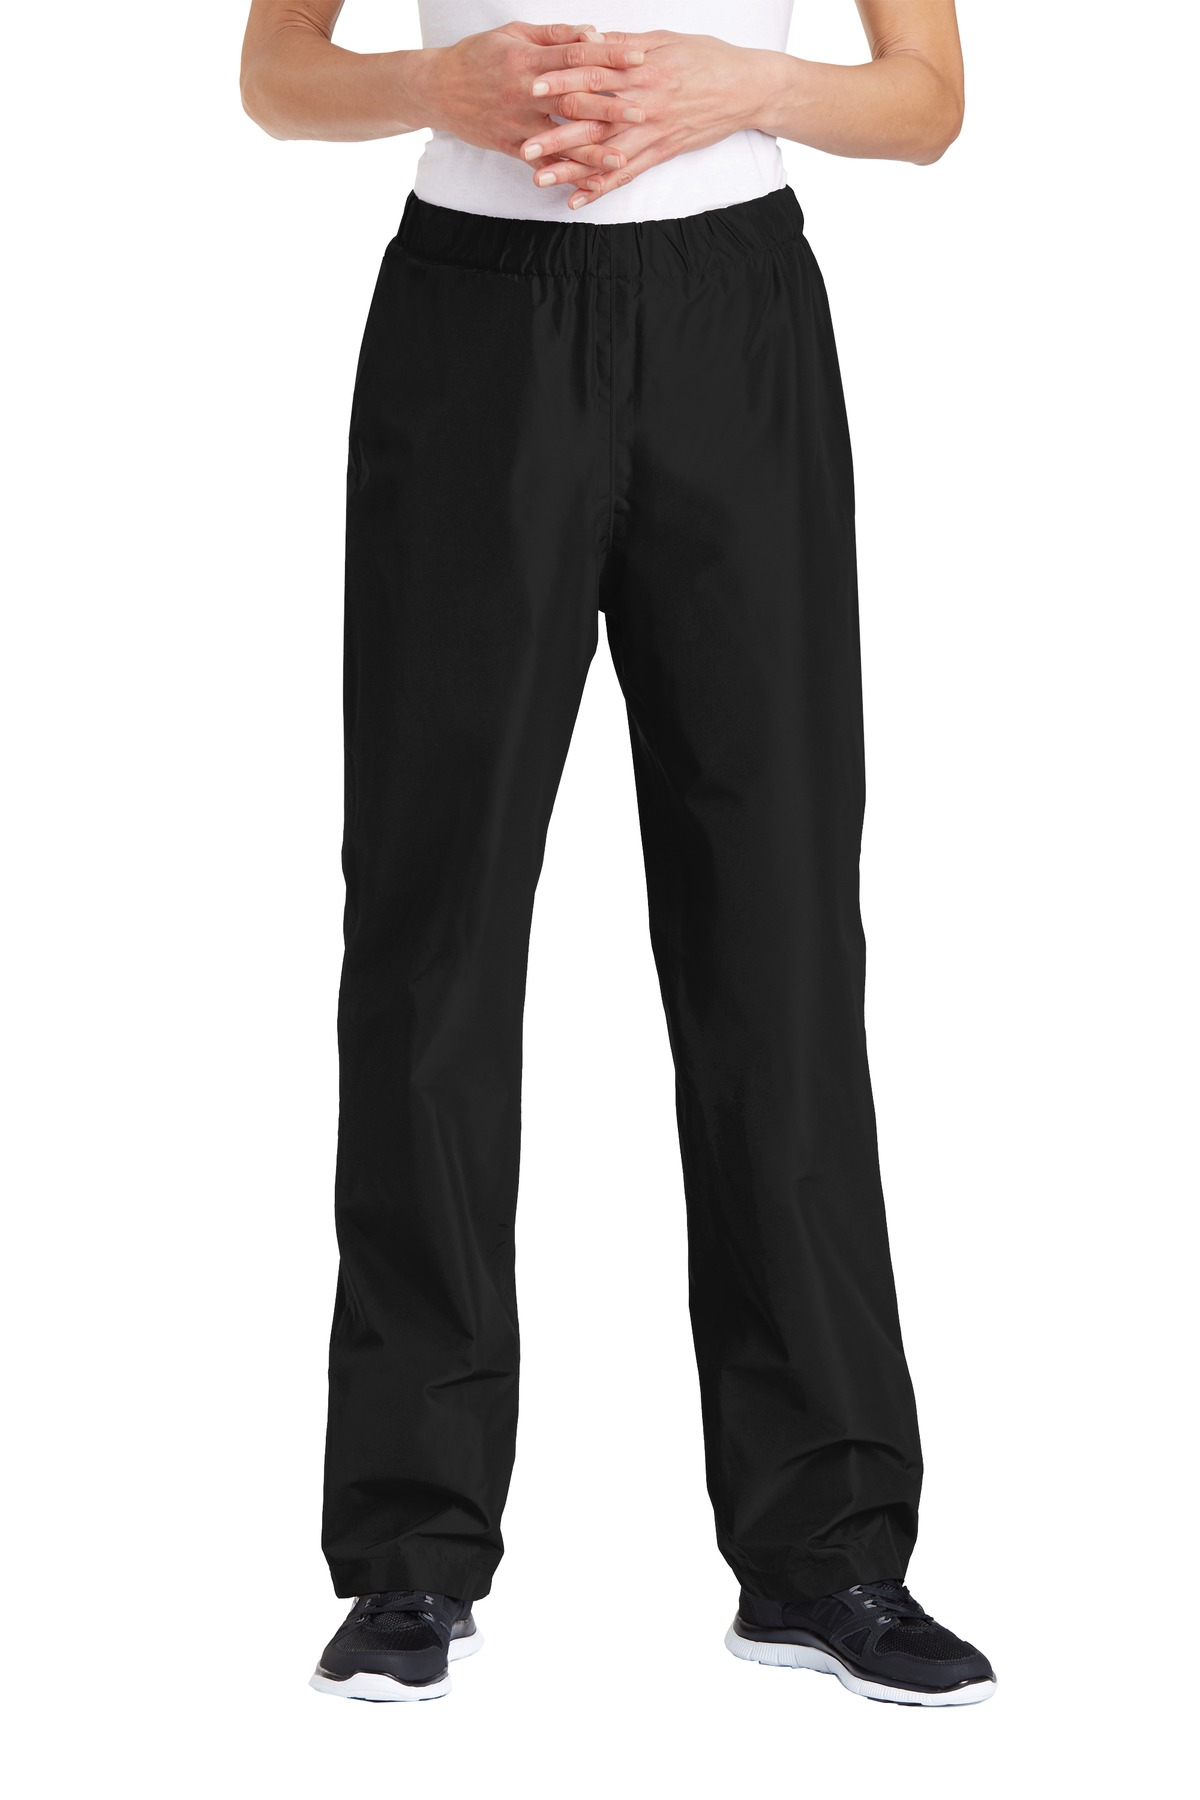 Port Authority  LPT333 - Ladies Torrent Waterproof Pant